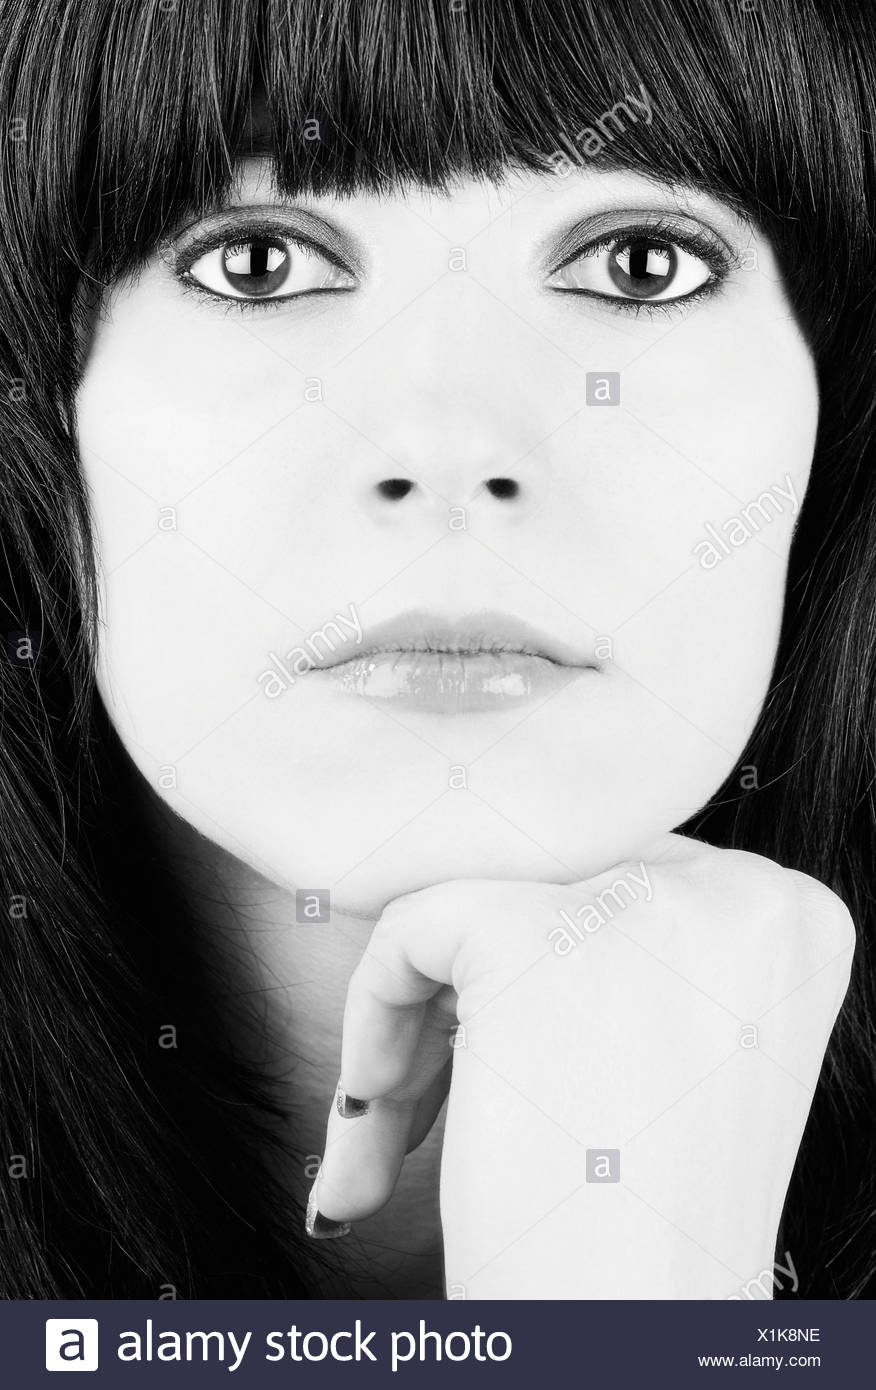 Portrait of a girl with black hair and big eyes resting her chin on her hand, black and white - Stock Image